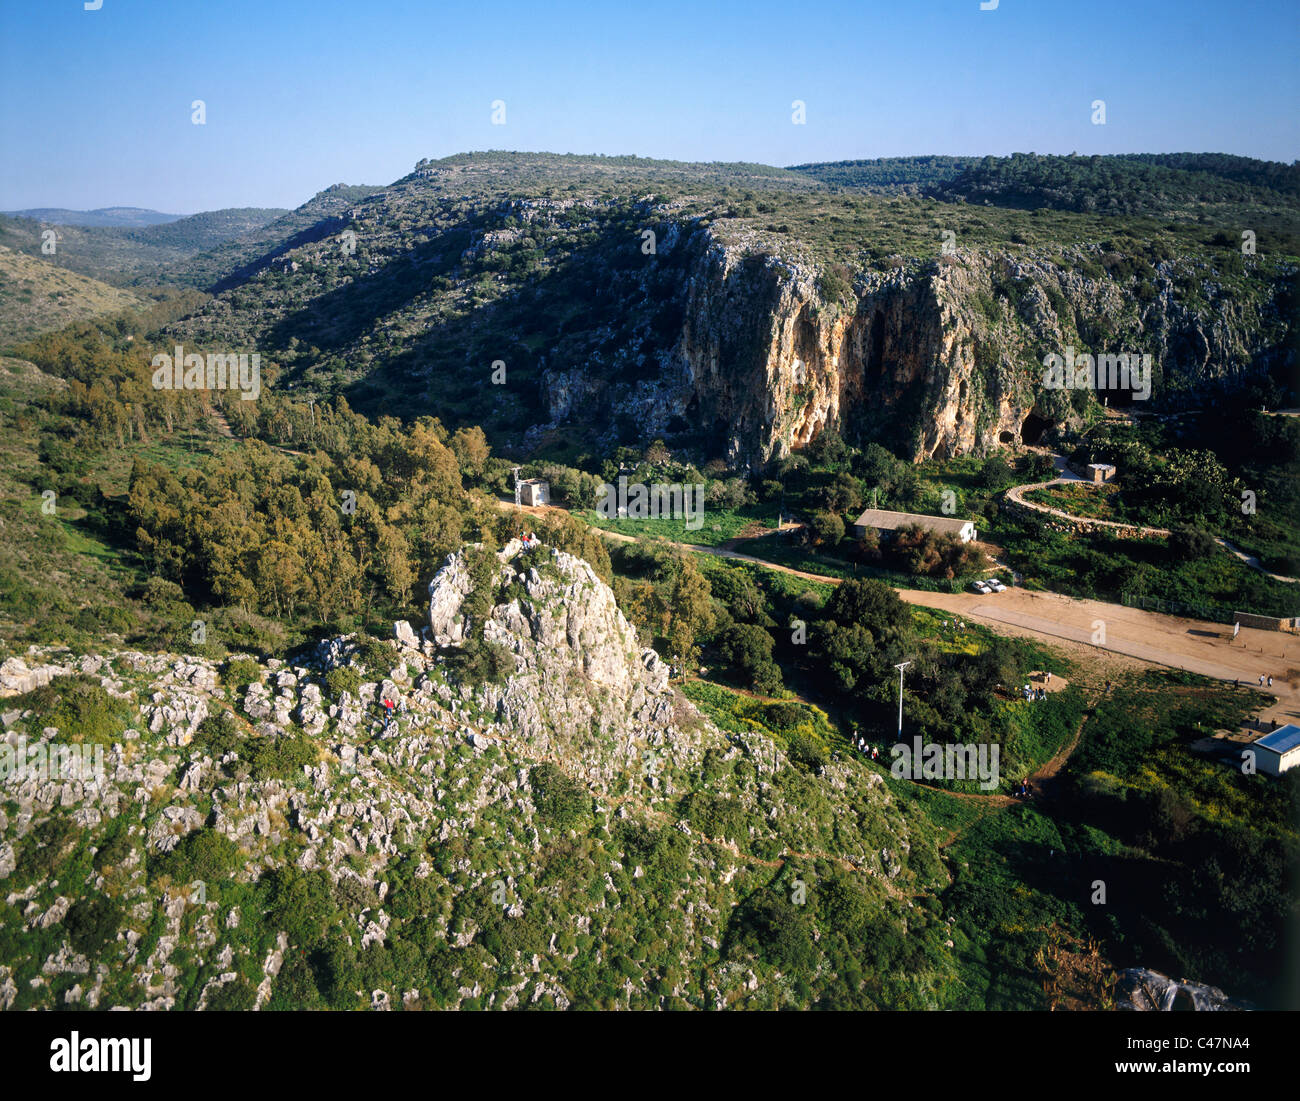 Aerial view of the prehistoric caves in the Carmel hills - Stock Image